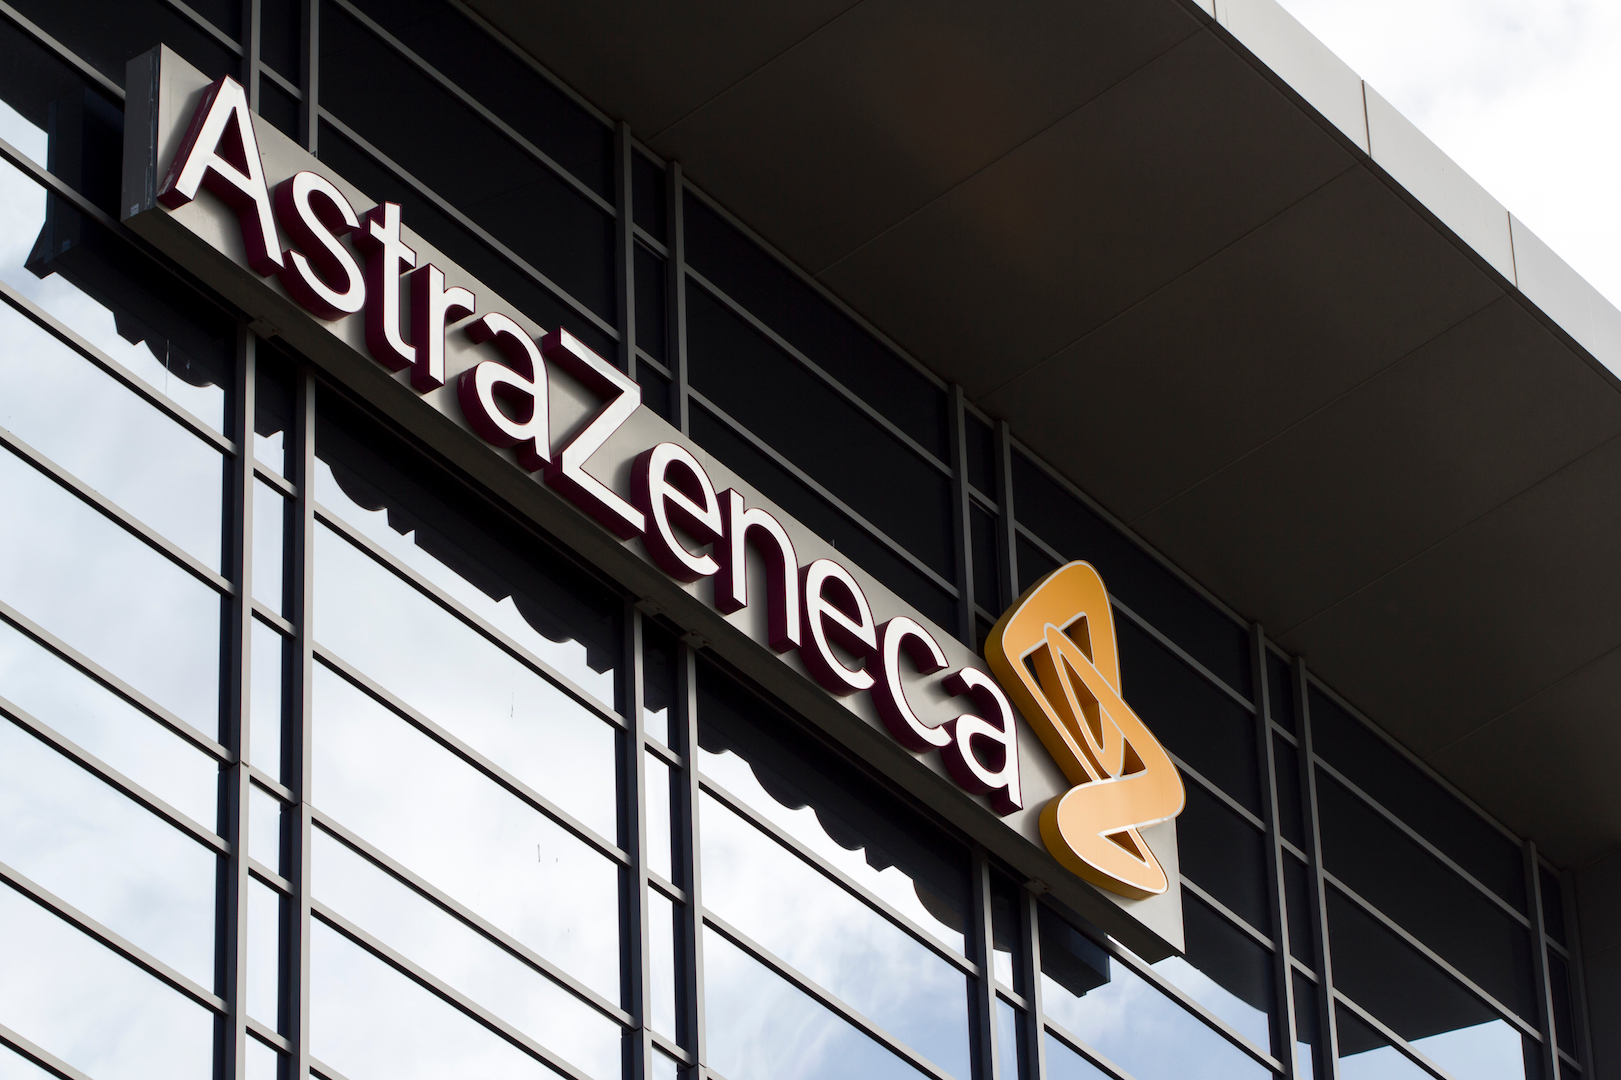 AstraZeneca COVID-19 vaccine causes very rare blood clots, EU regulator says thumbnail